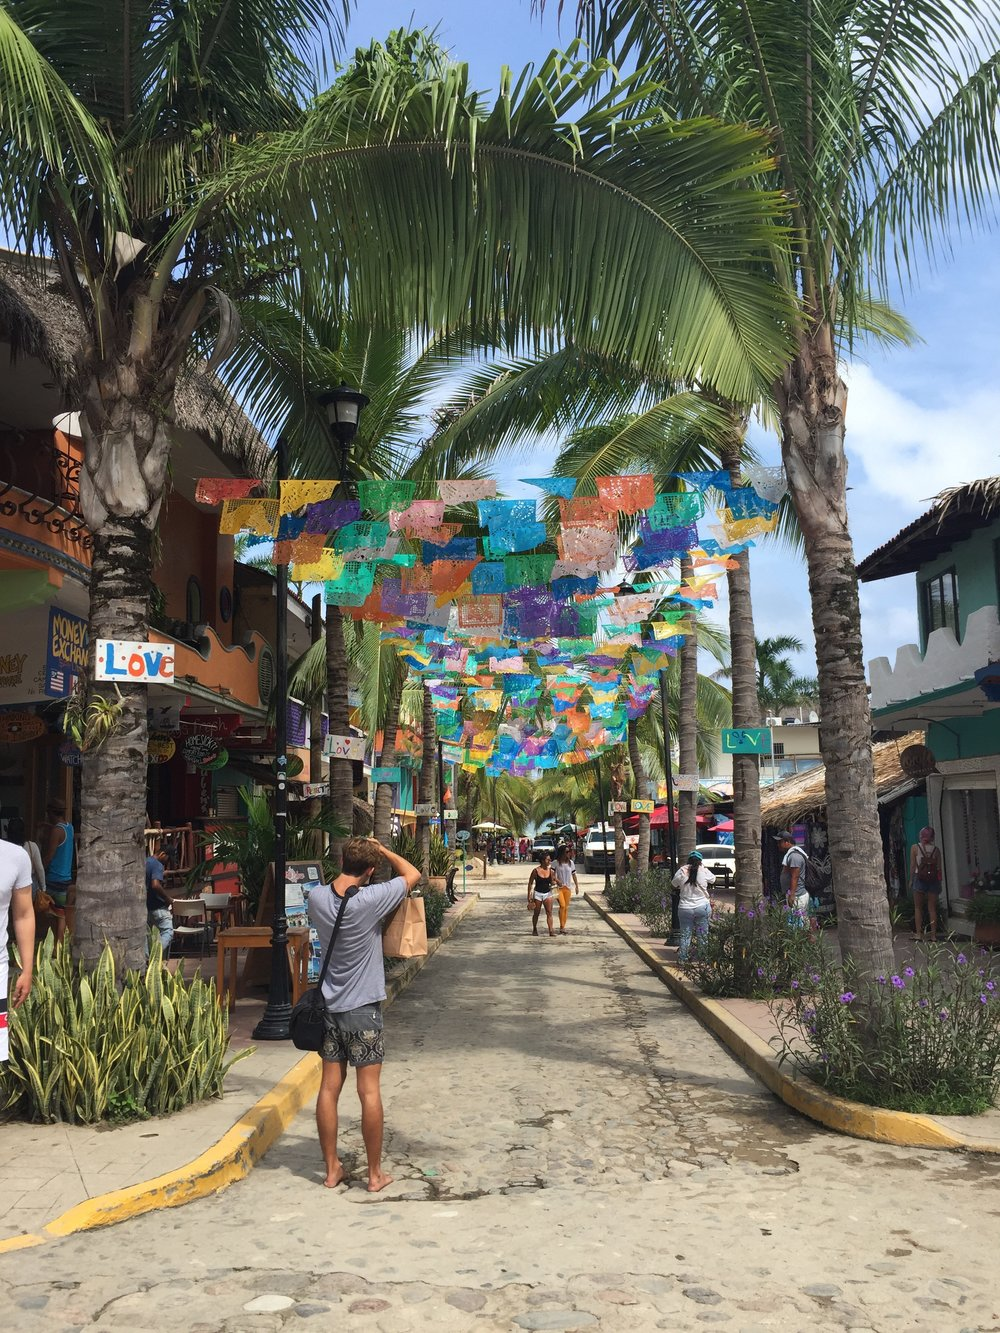 Sayulita, my hometown for the next couple of weeks.